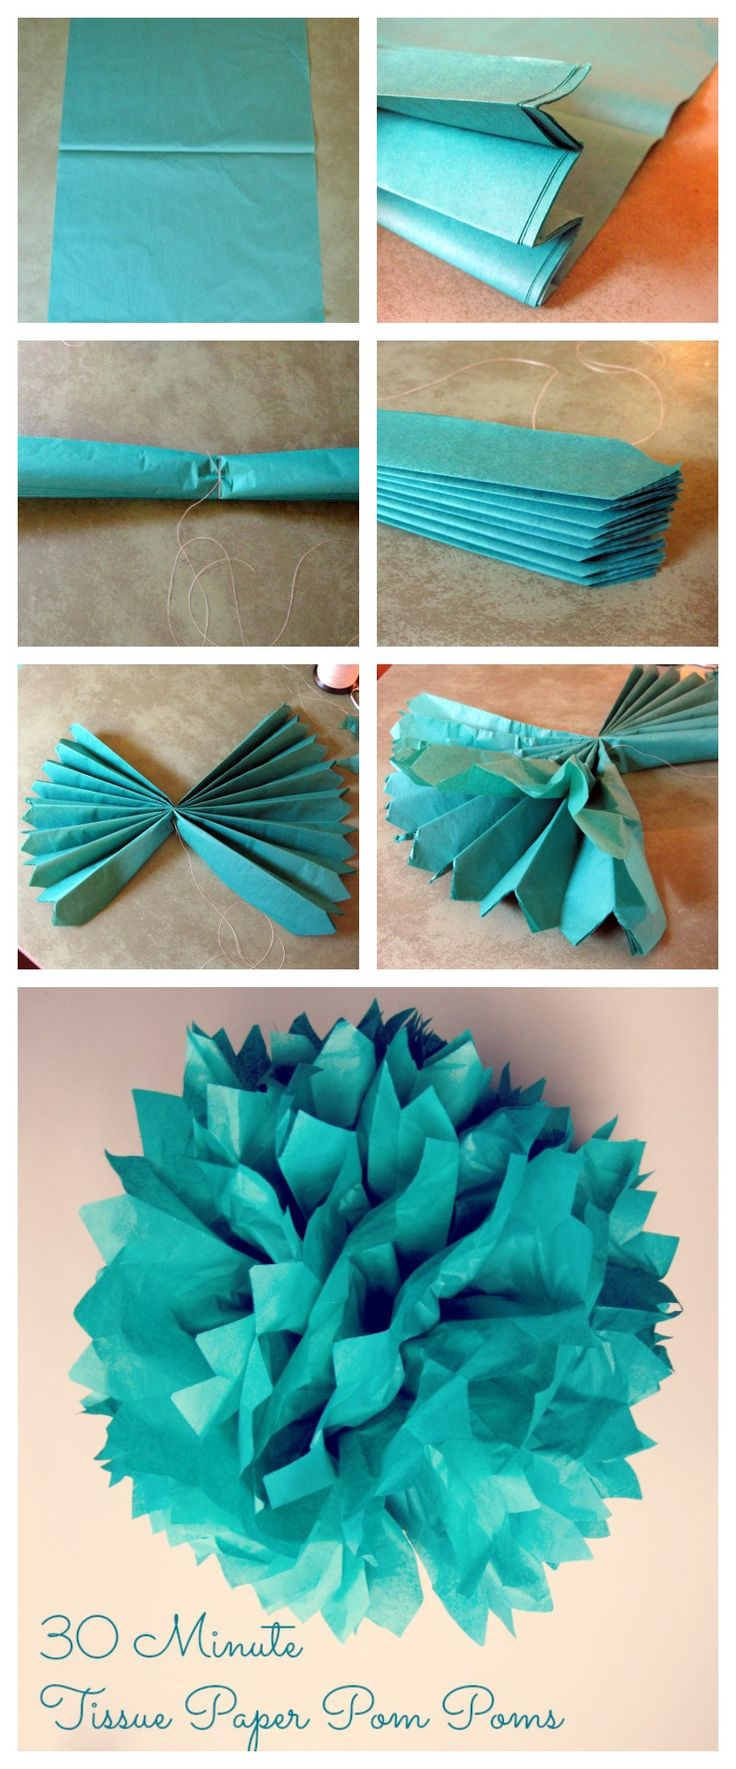 how to make tissue paper pom pom decorations Hanging pom-poms 1 stack eight 20-by-30-inch sheets of tissue make 1 1/2-inchwide accordion folds, creasing with each fold 2 fold an 18-inch piece of floral wire in half, and slip over center of folded tissue twist with scissors, trim ends of tissue into rounded or pointy shapes 3 separate layers, pulling away from center one at a time 4.